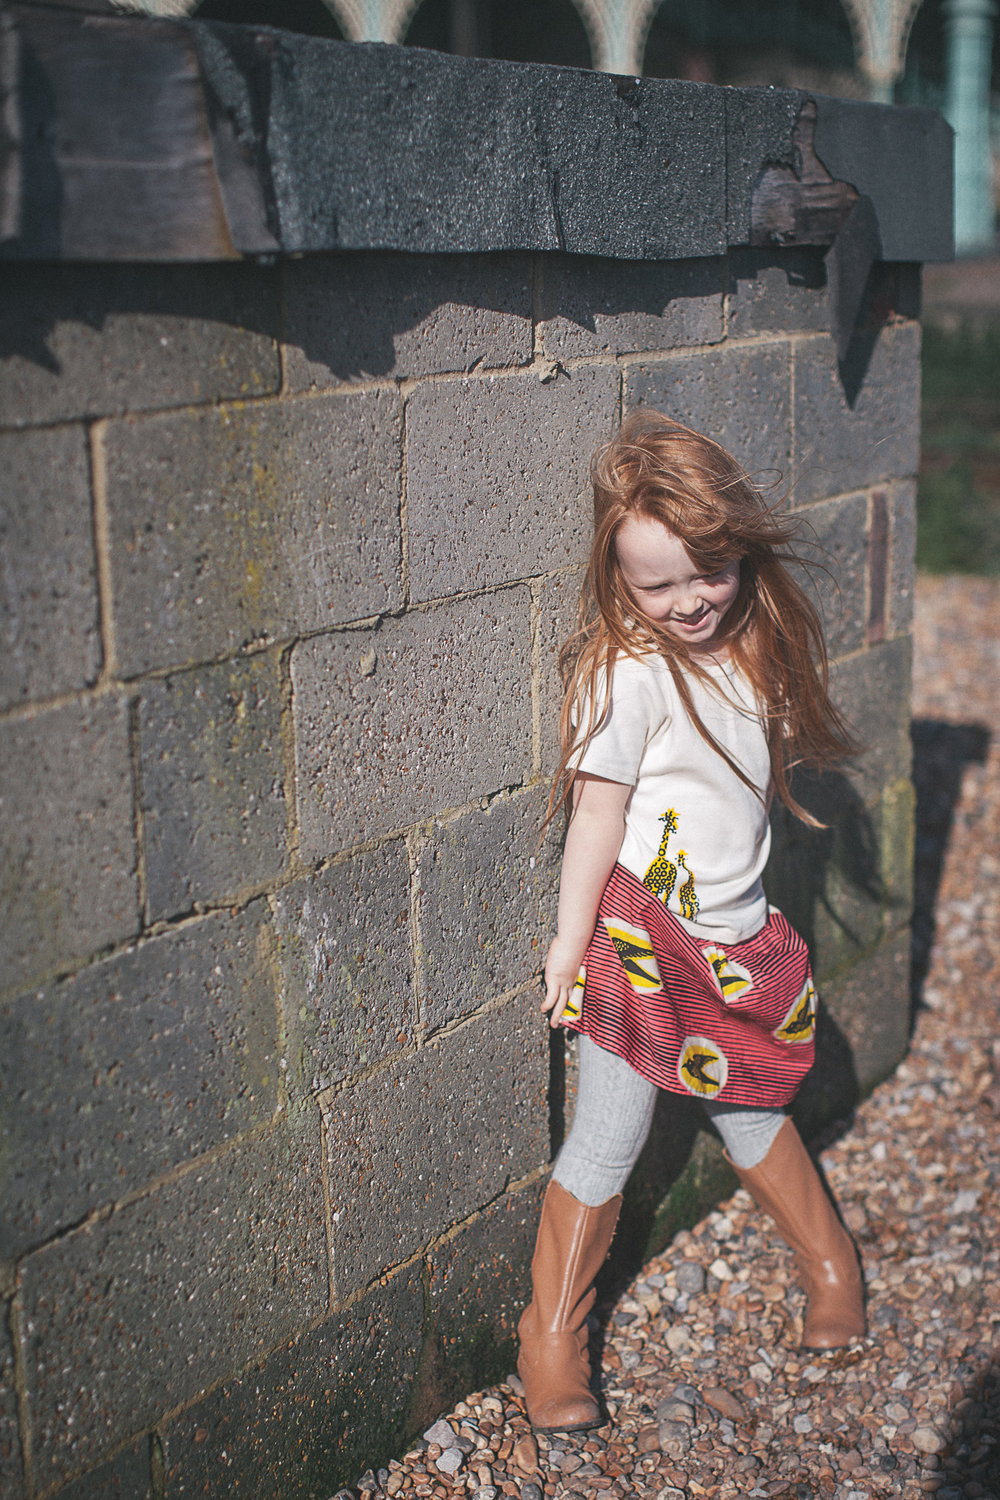 ethical_childrens_clothing_231013_039.jpg